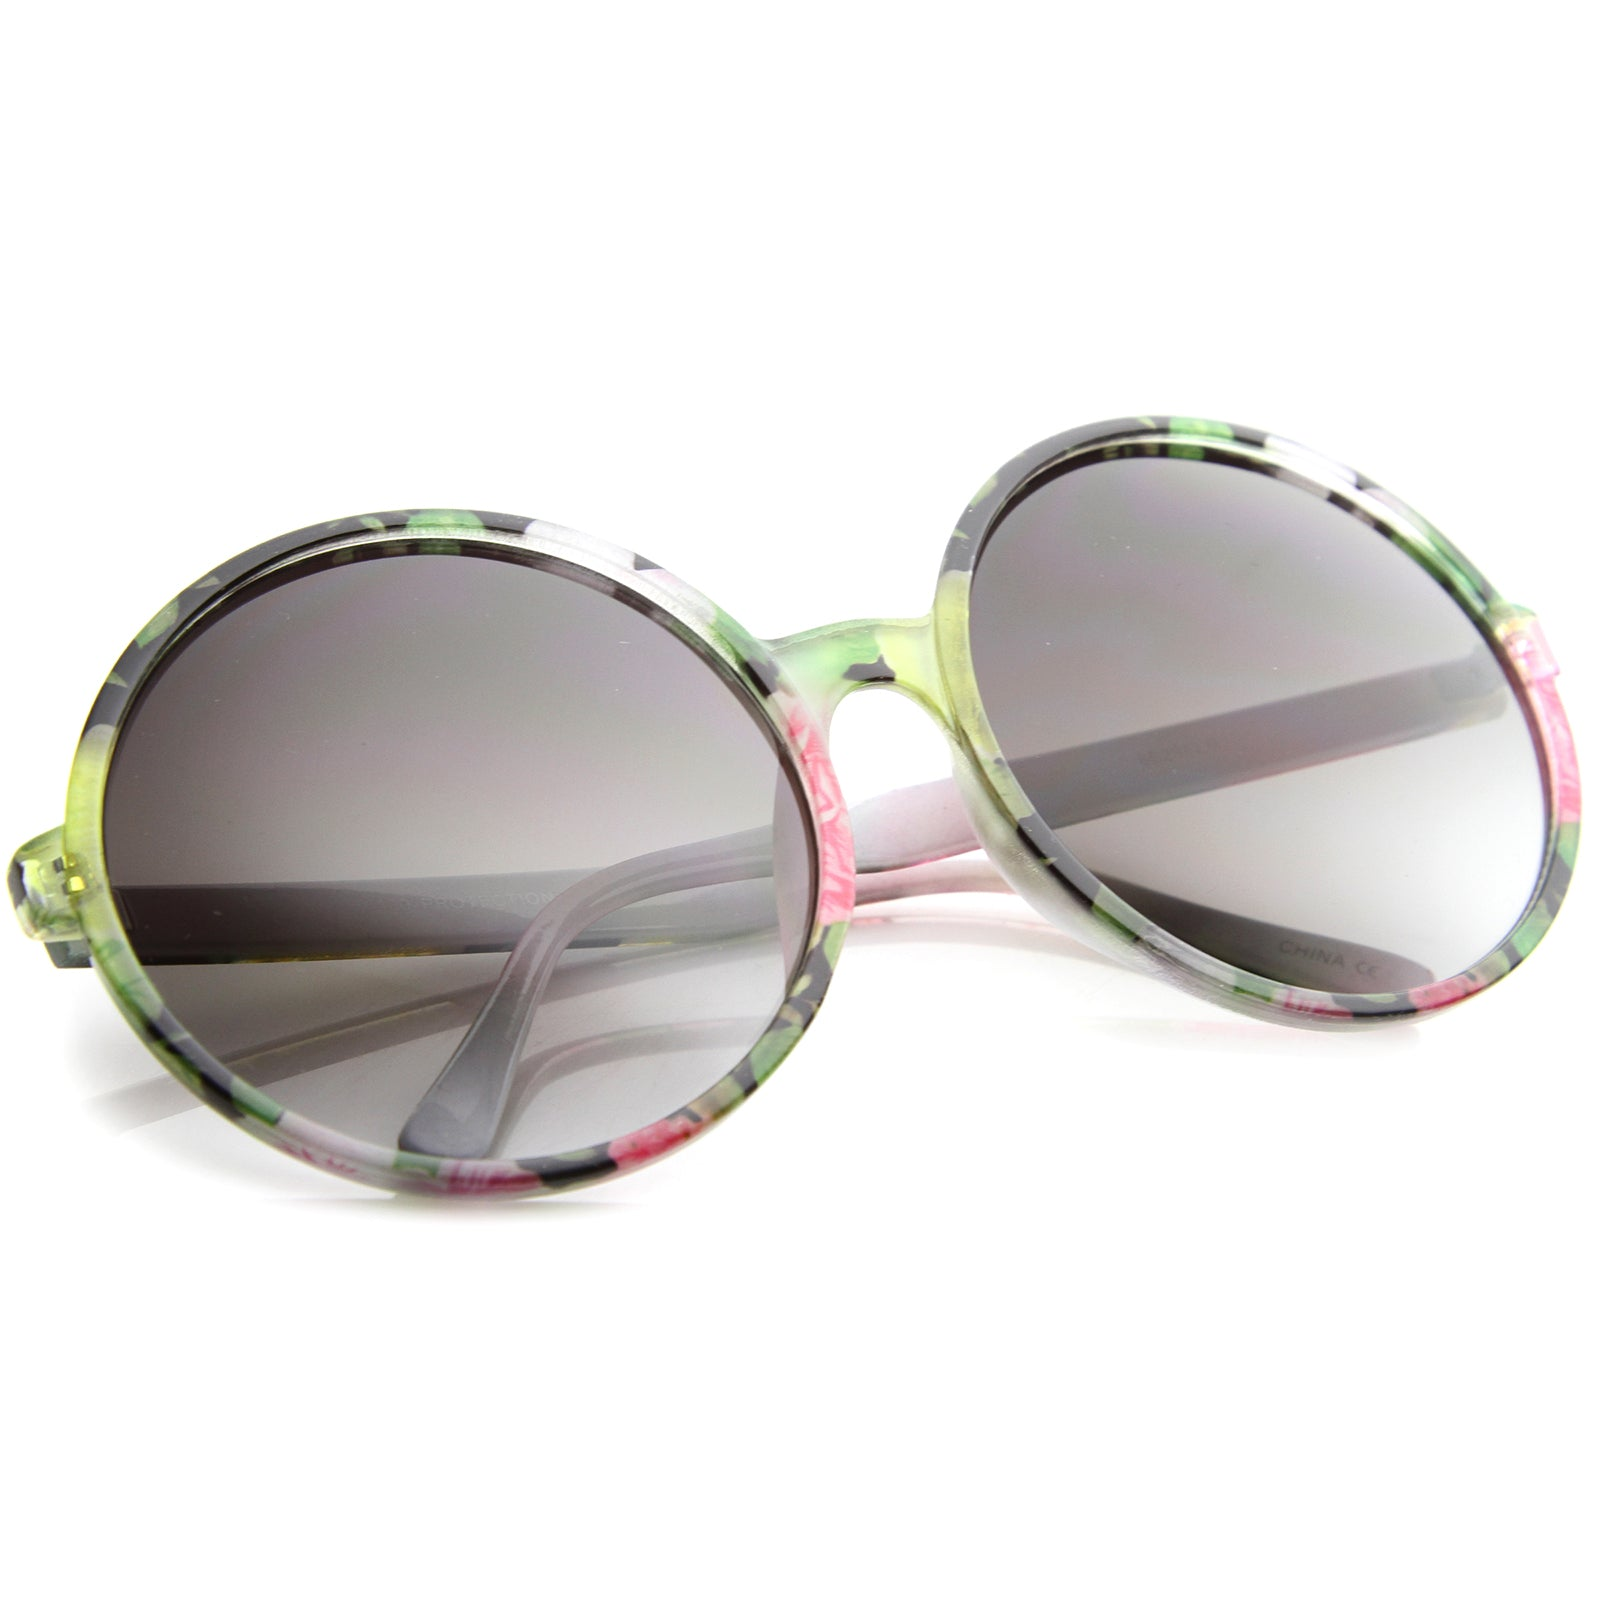 Women's Fashion Floral Print Gradient Lens Oversize Round Sunglasses 66mm - sunglass.la - 8